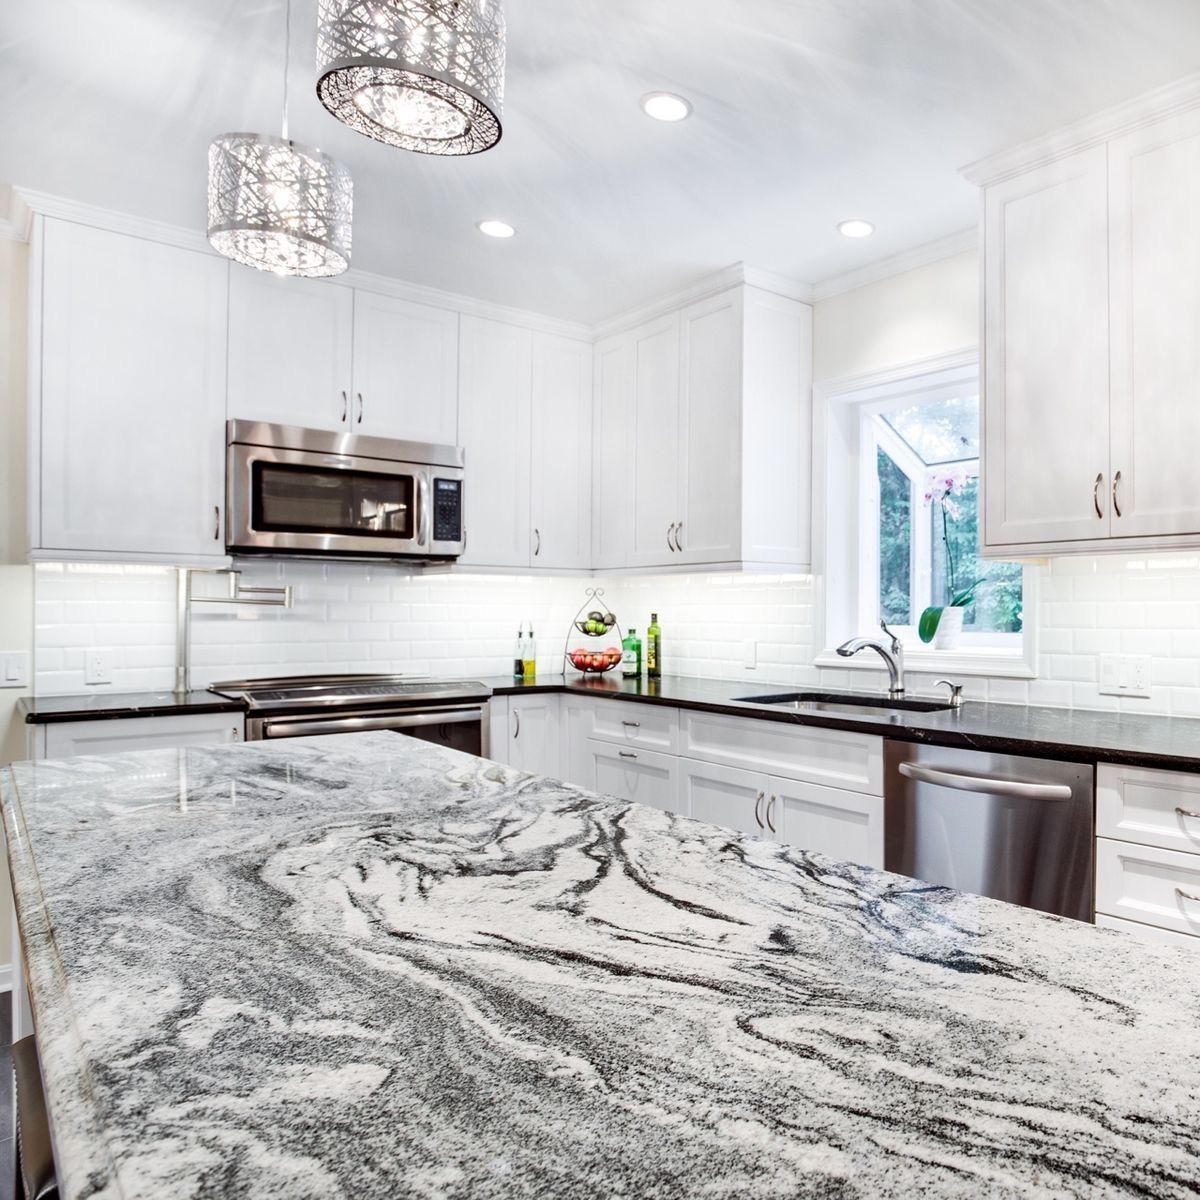 Viscon white granite kitchen ideas pinterest white for White cabinets granite countertops